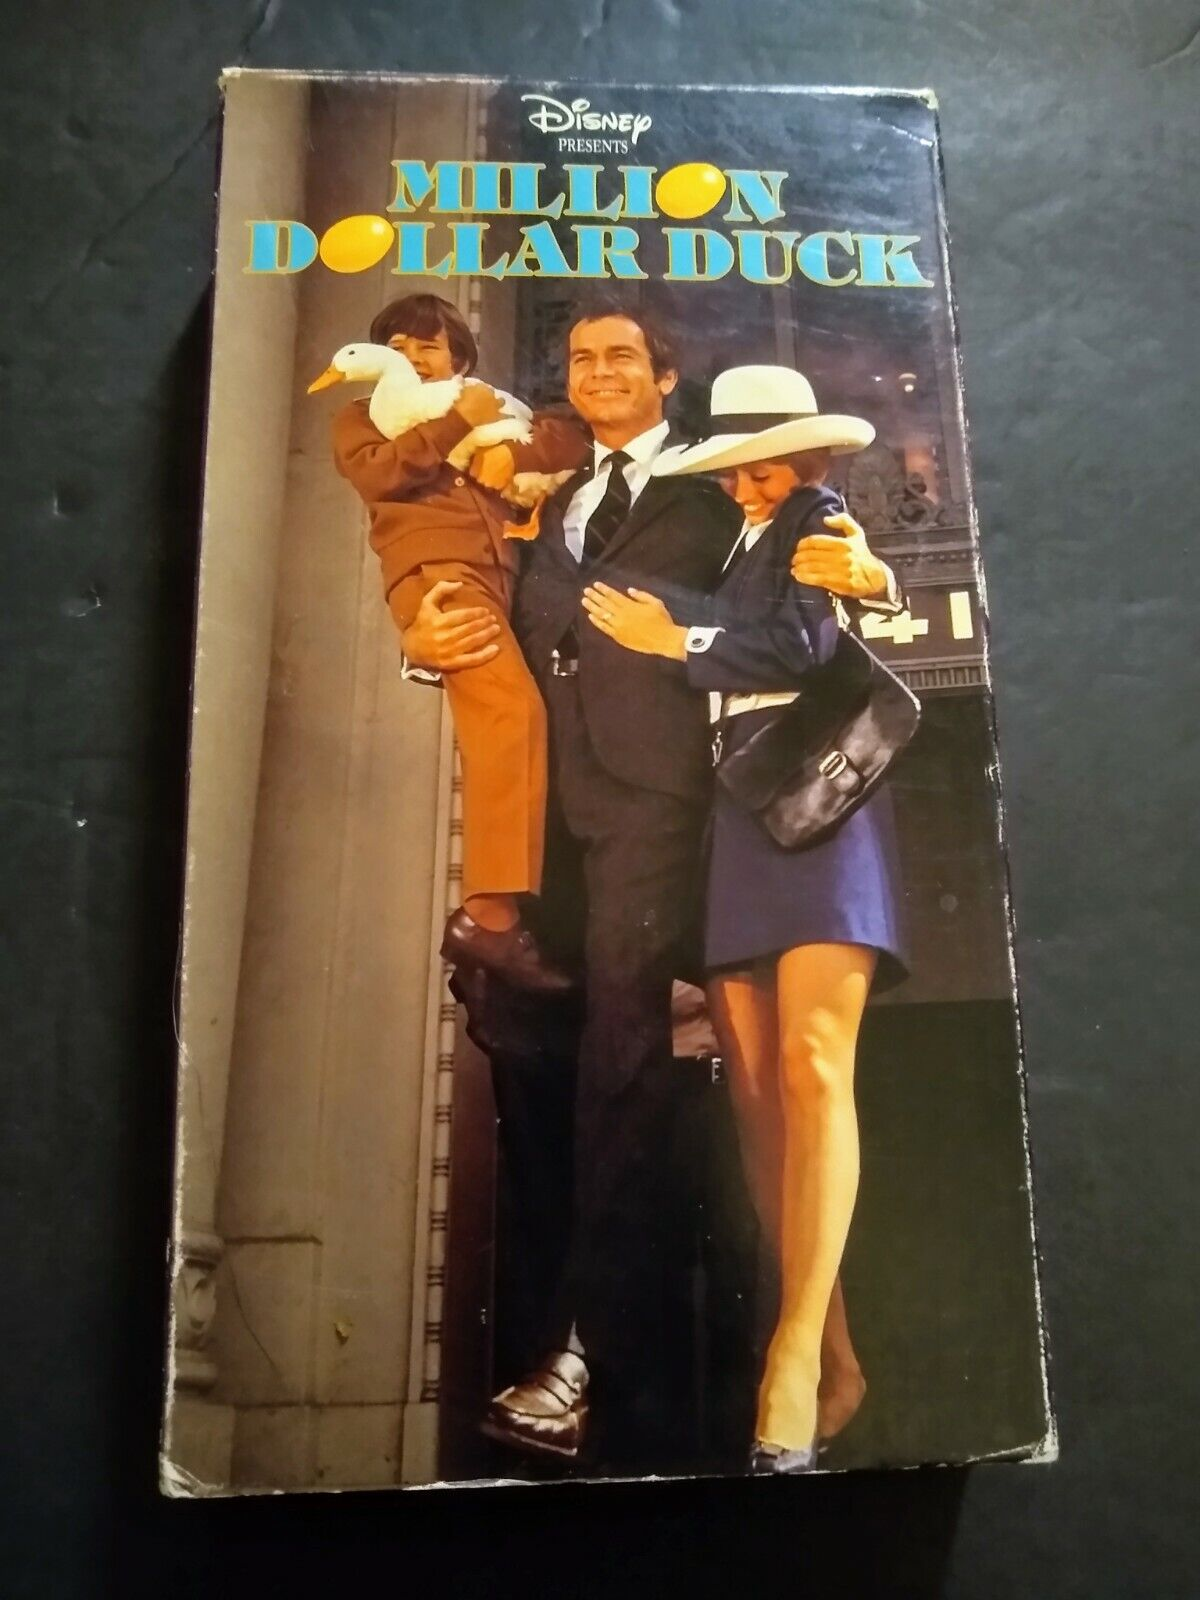 Million Dollar Duck VHS, 1995  - $3.00